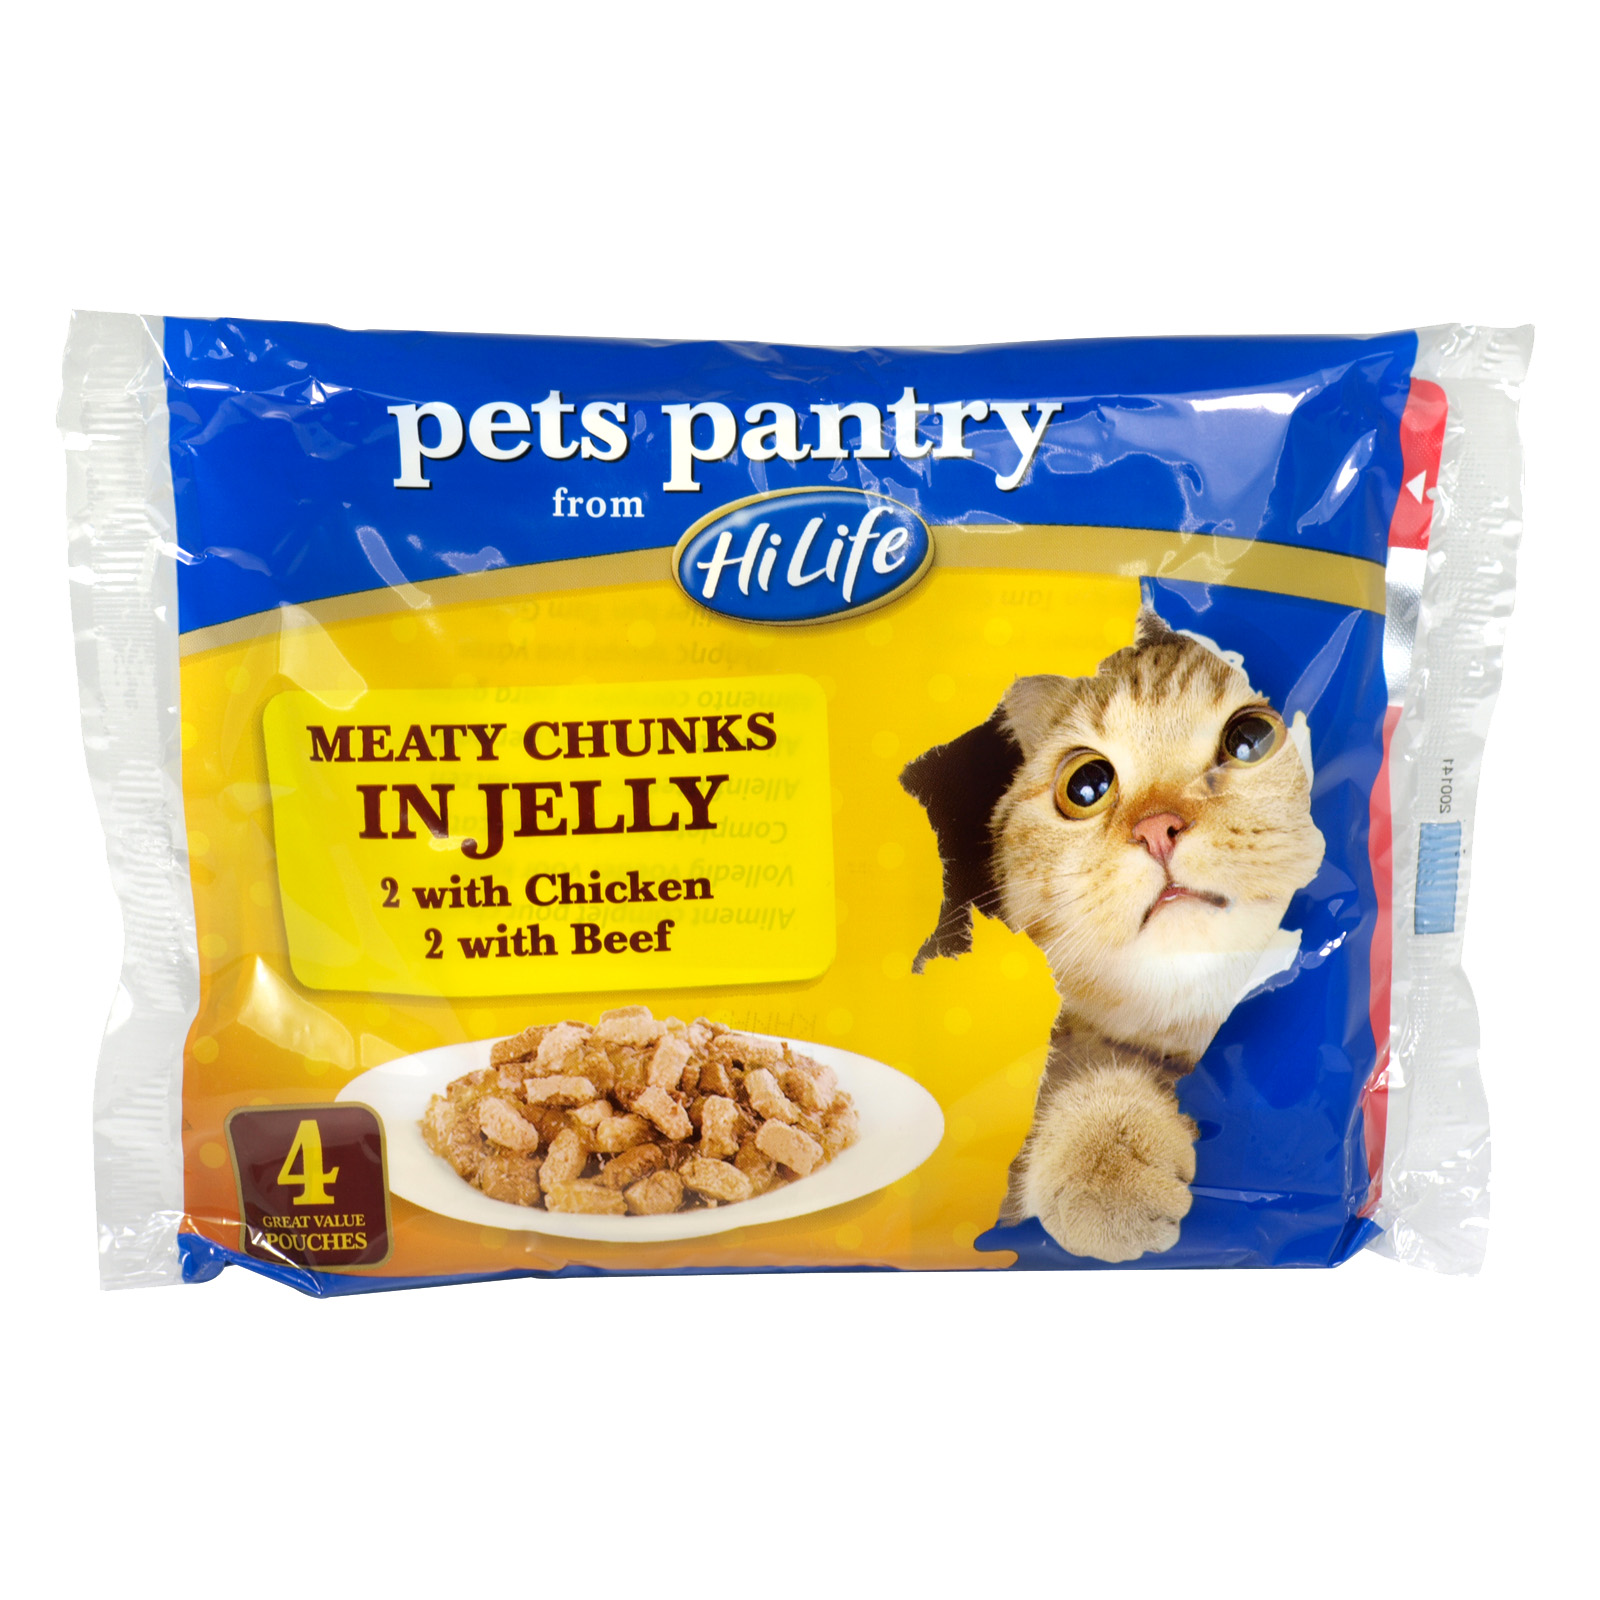 PETS PANTRY MEAT CHUNKS IN JELLY 4PK X12